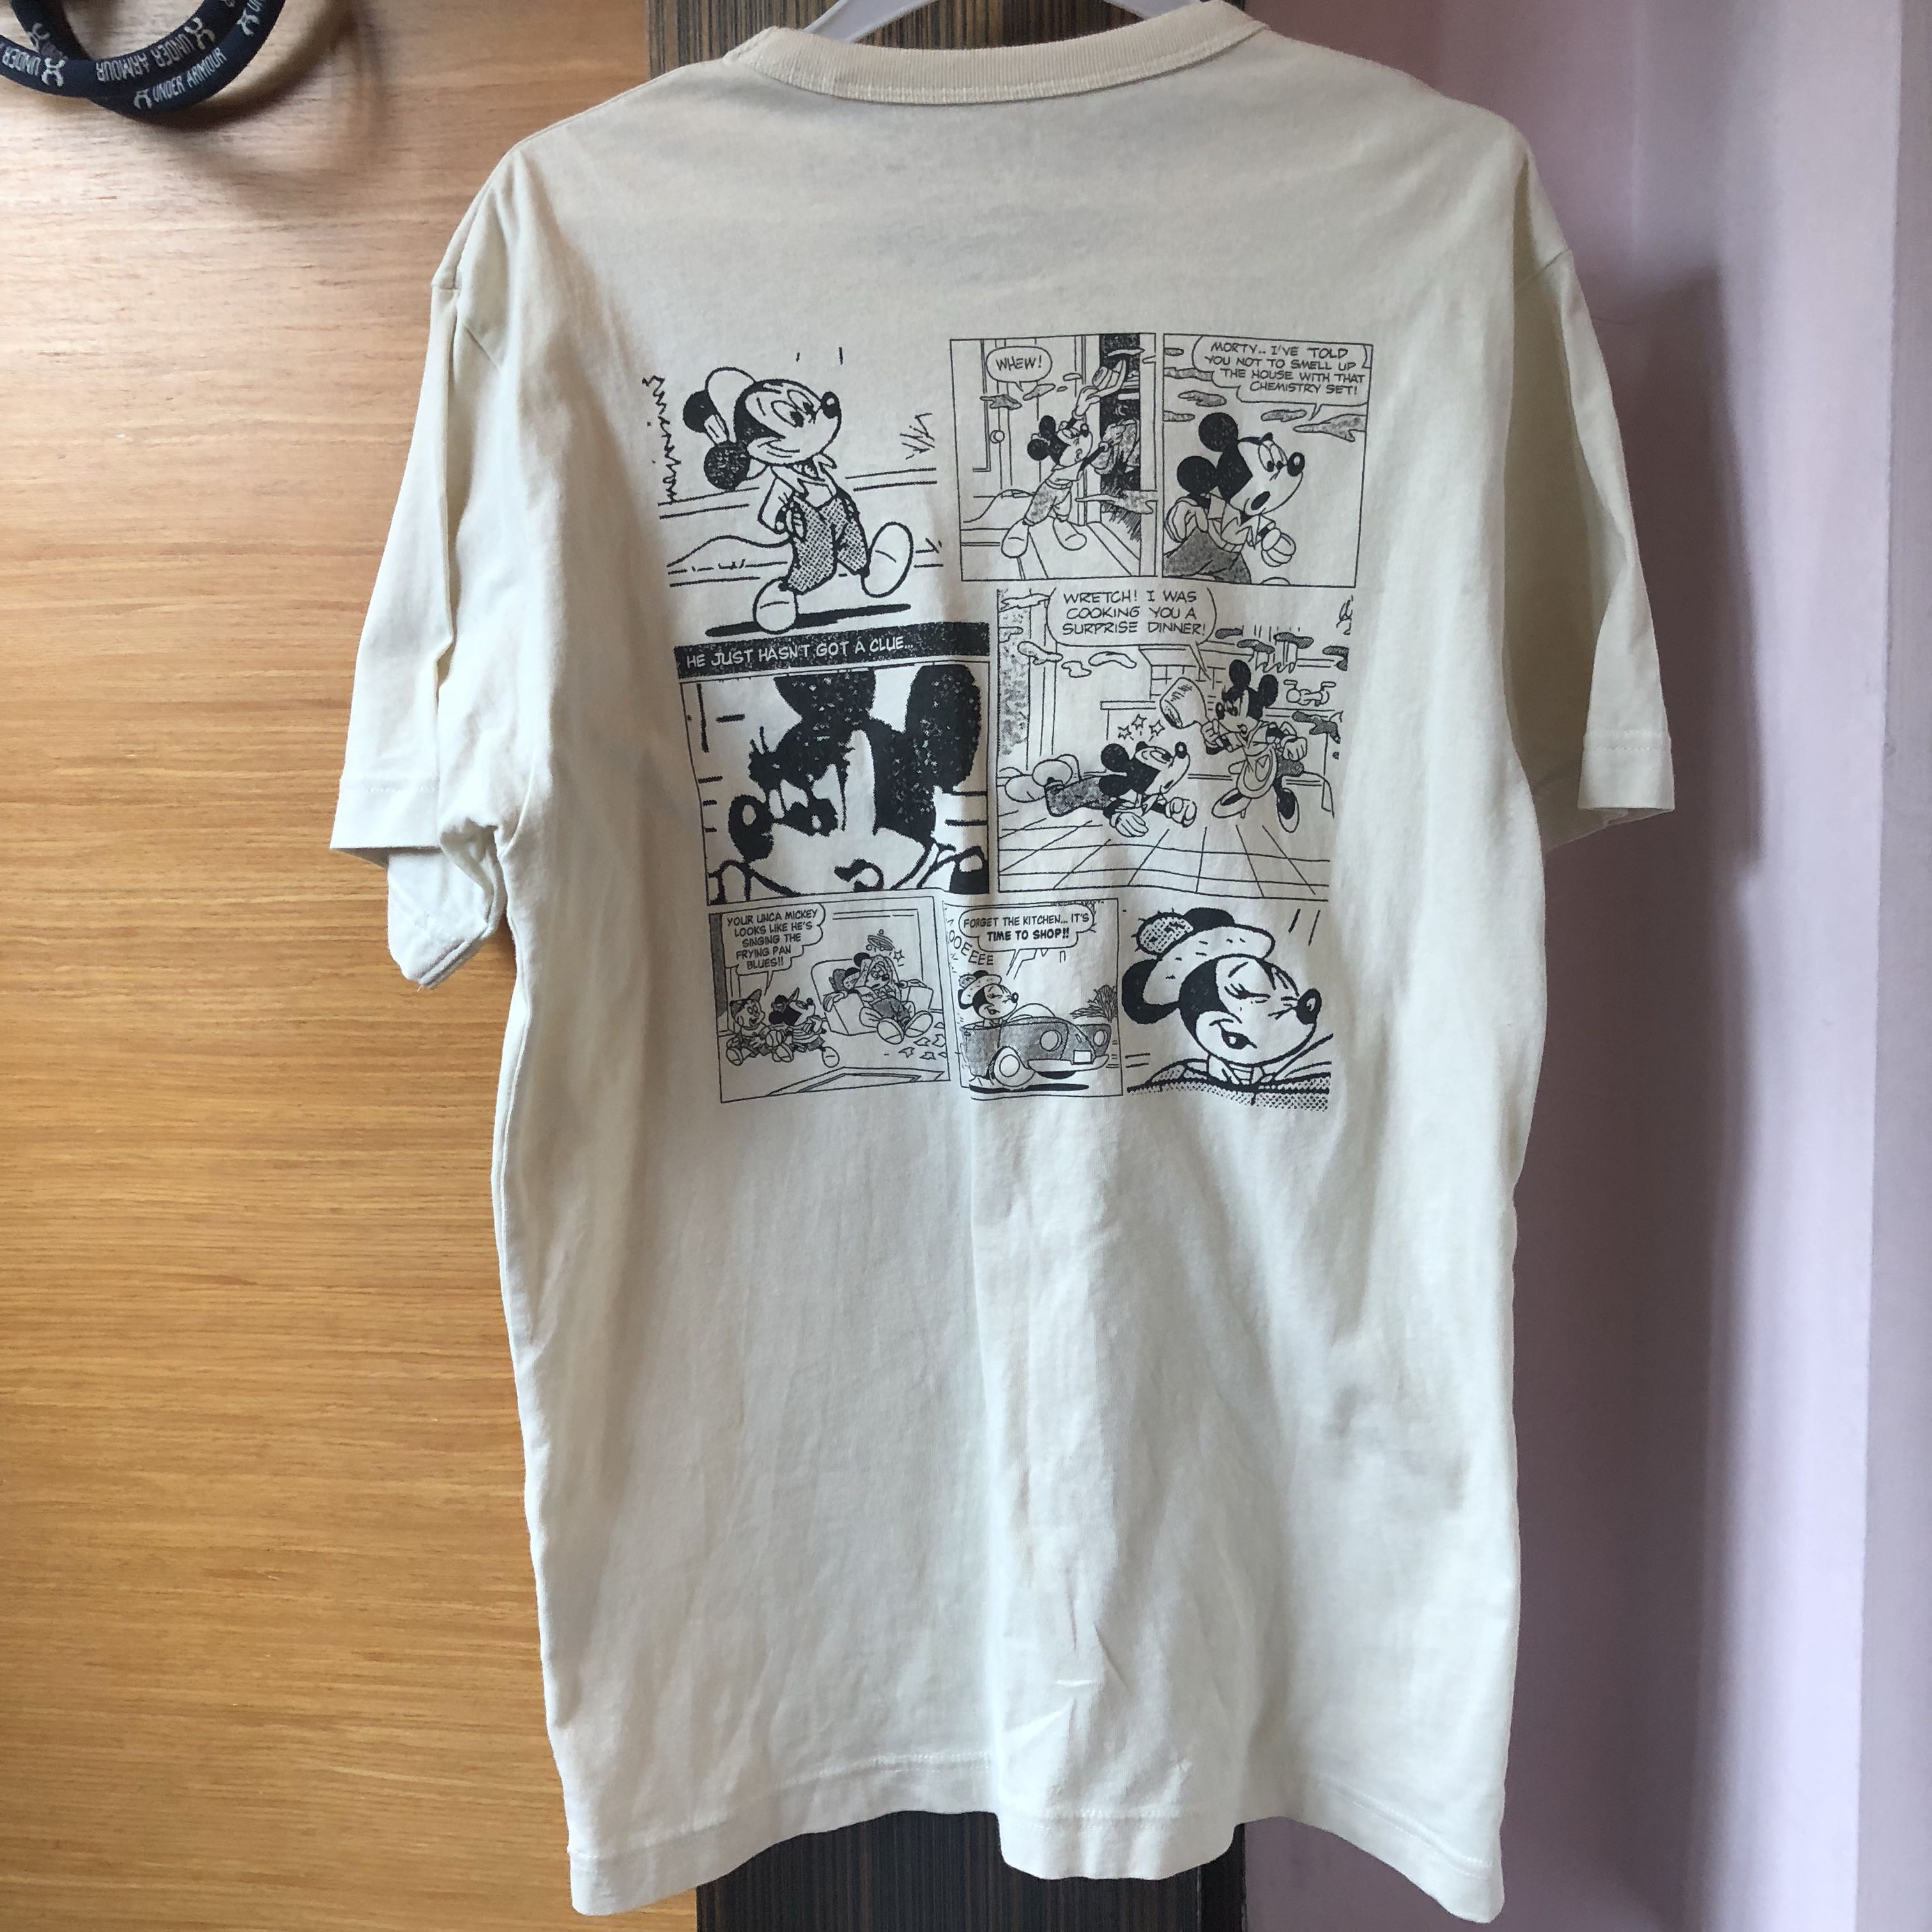 39cd9f47a04 Mickey mouse graphic tee men fashion clothes tops on carousell jpg  3024x3024 Stussy tumblr gucci cool